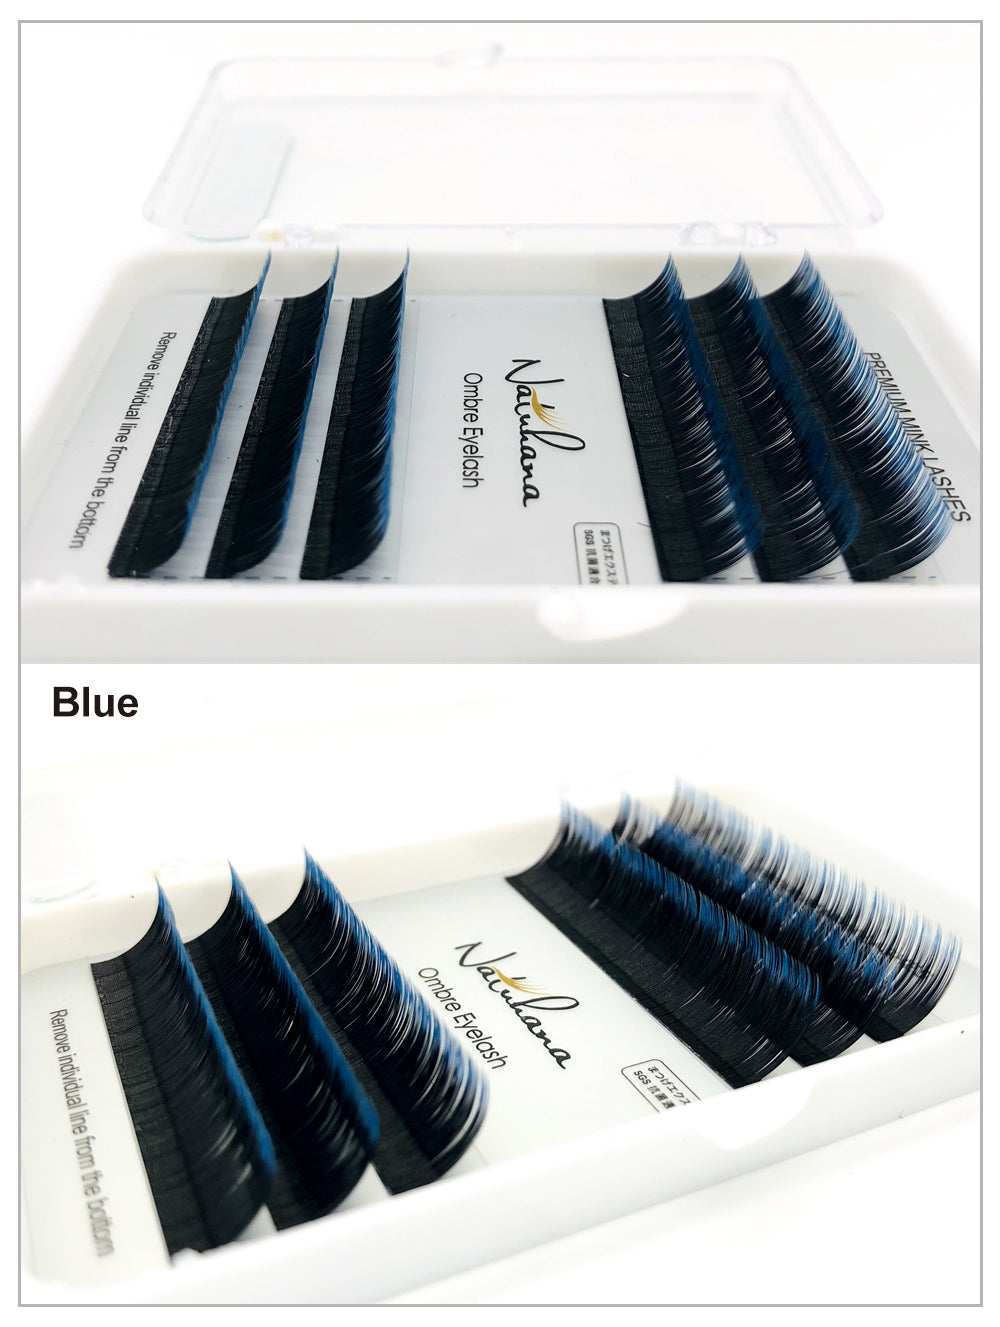 MilkySkinForever Free shipping 6Rows Ombre Blue Purple Color Eyelash Extension Individual Faux Mink False Eye Lashes Professional Salon